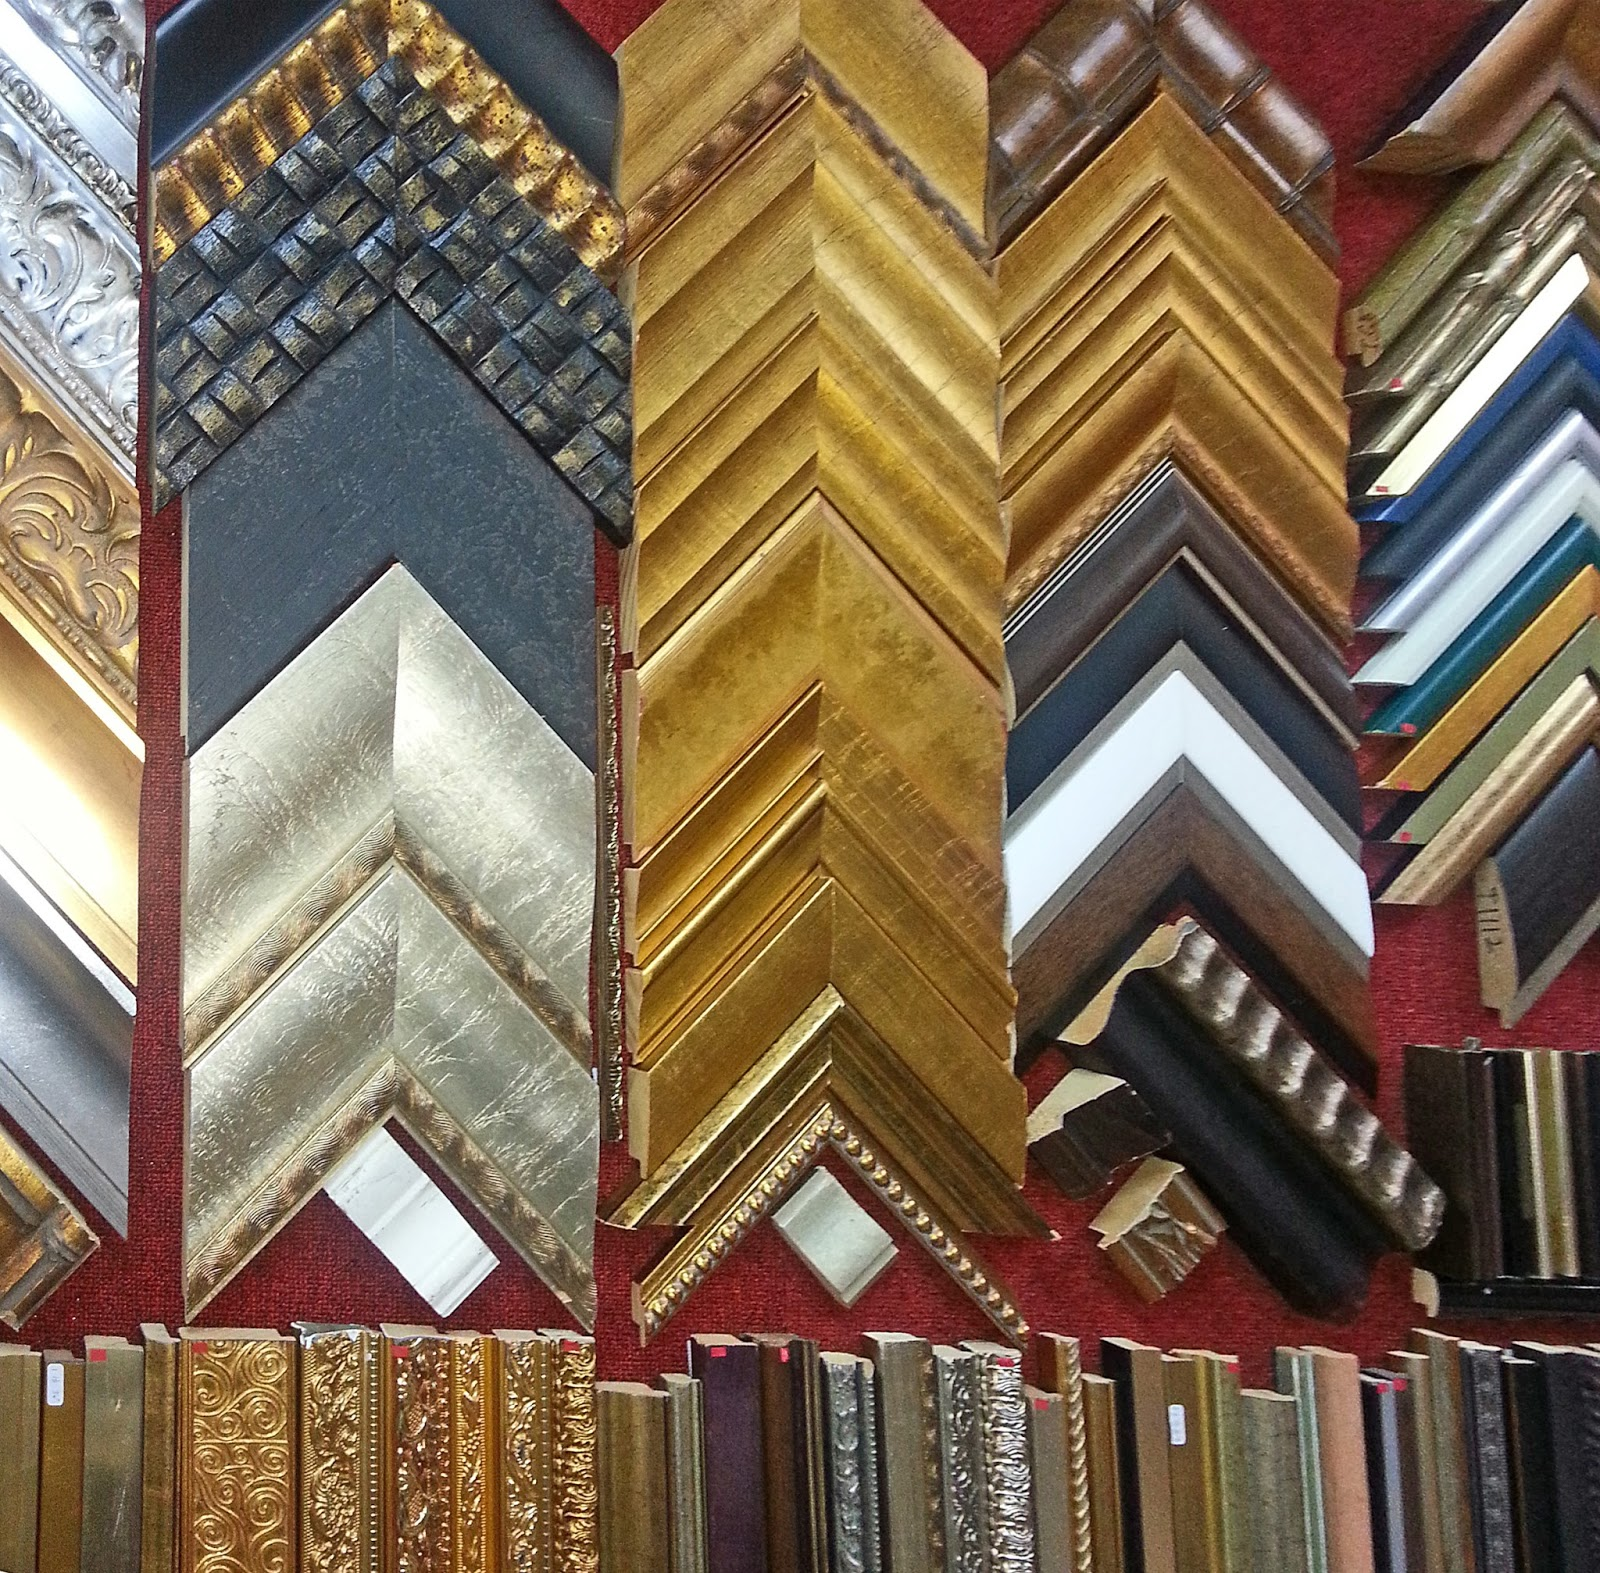 Frame shop in Kuala Lumpur - Talens Frames Gallery: Art Framing in ...